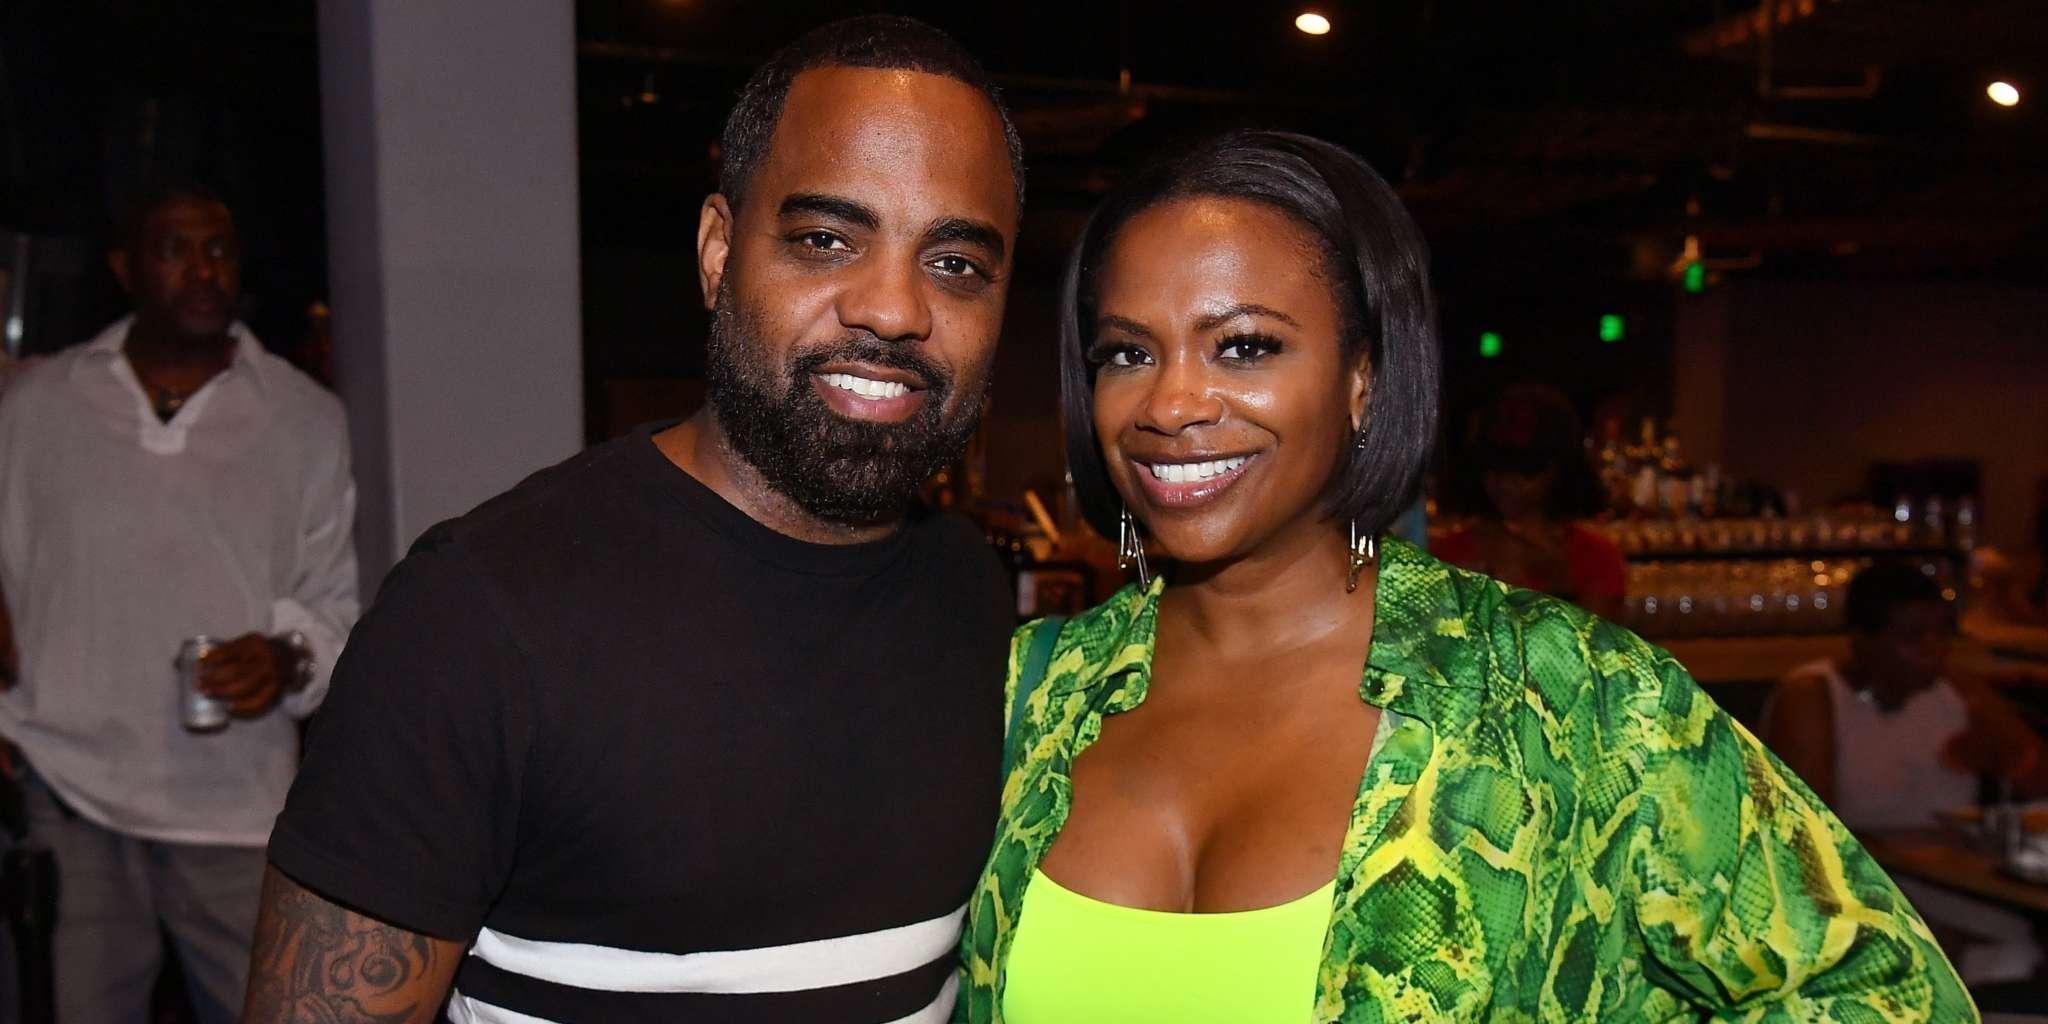 Kandi Burruss' Husband, Todd Tucker's Recent Photo Has Shamea Morton Sending Love